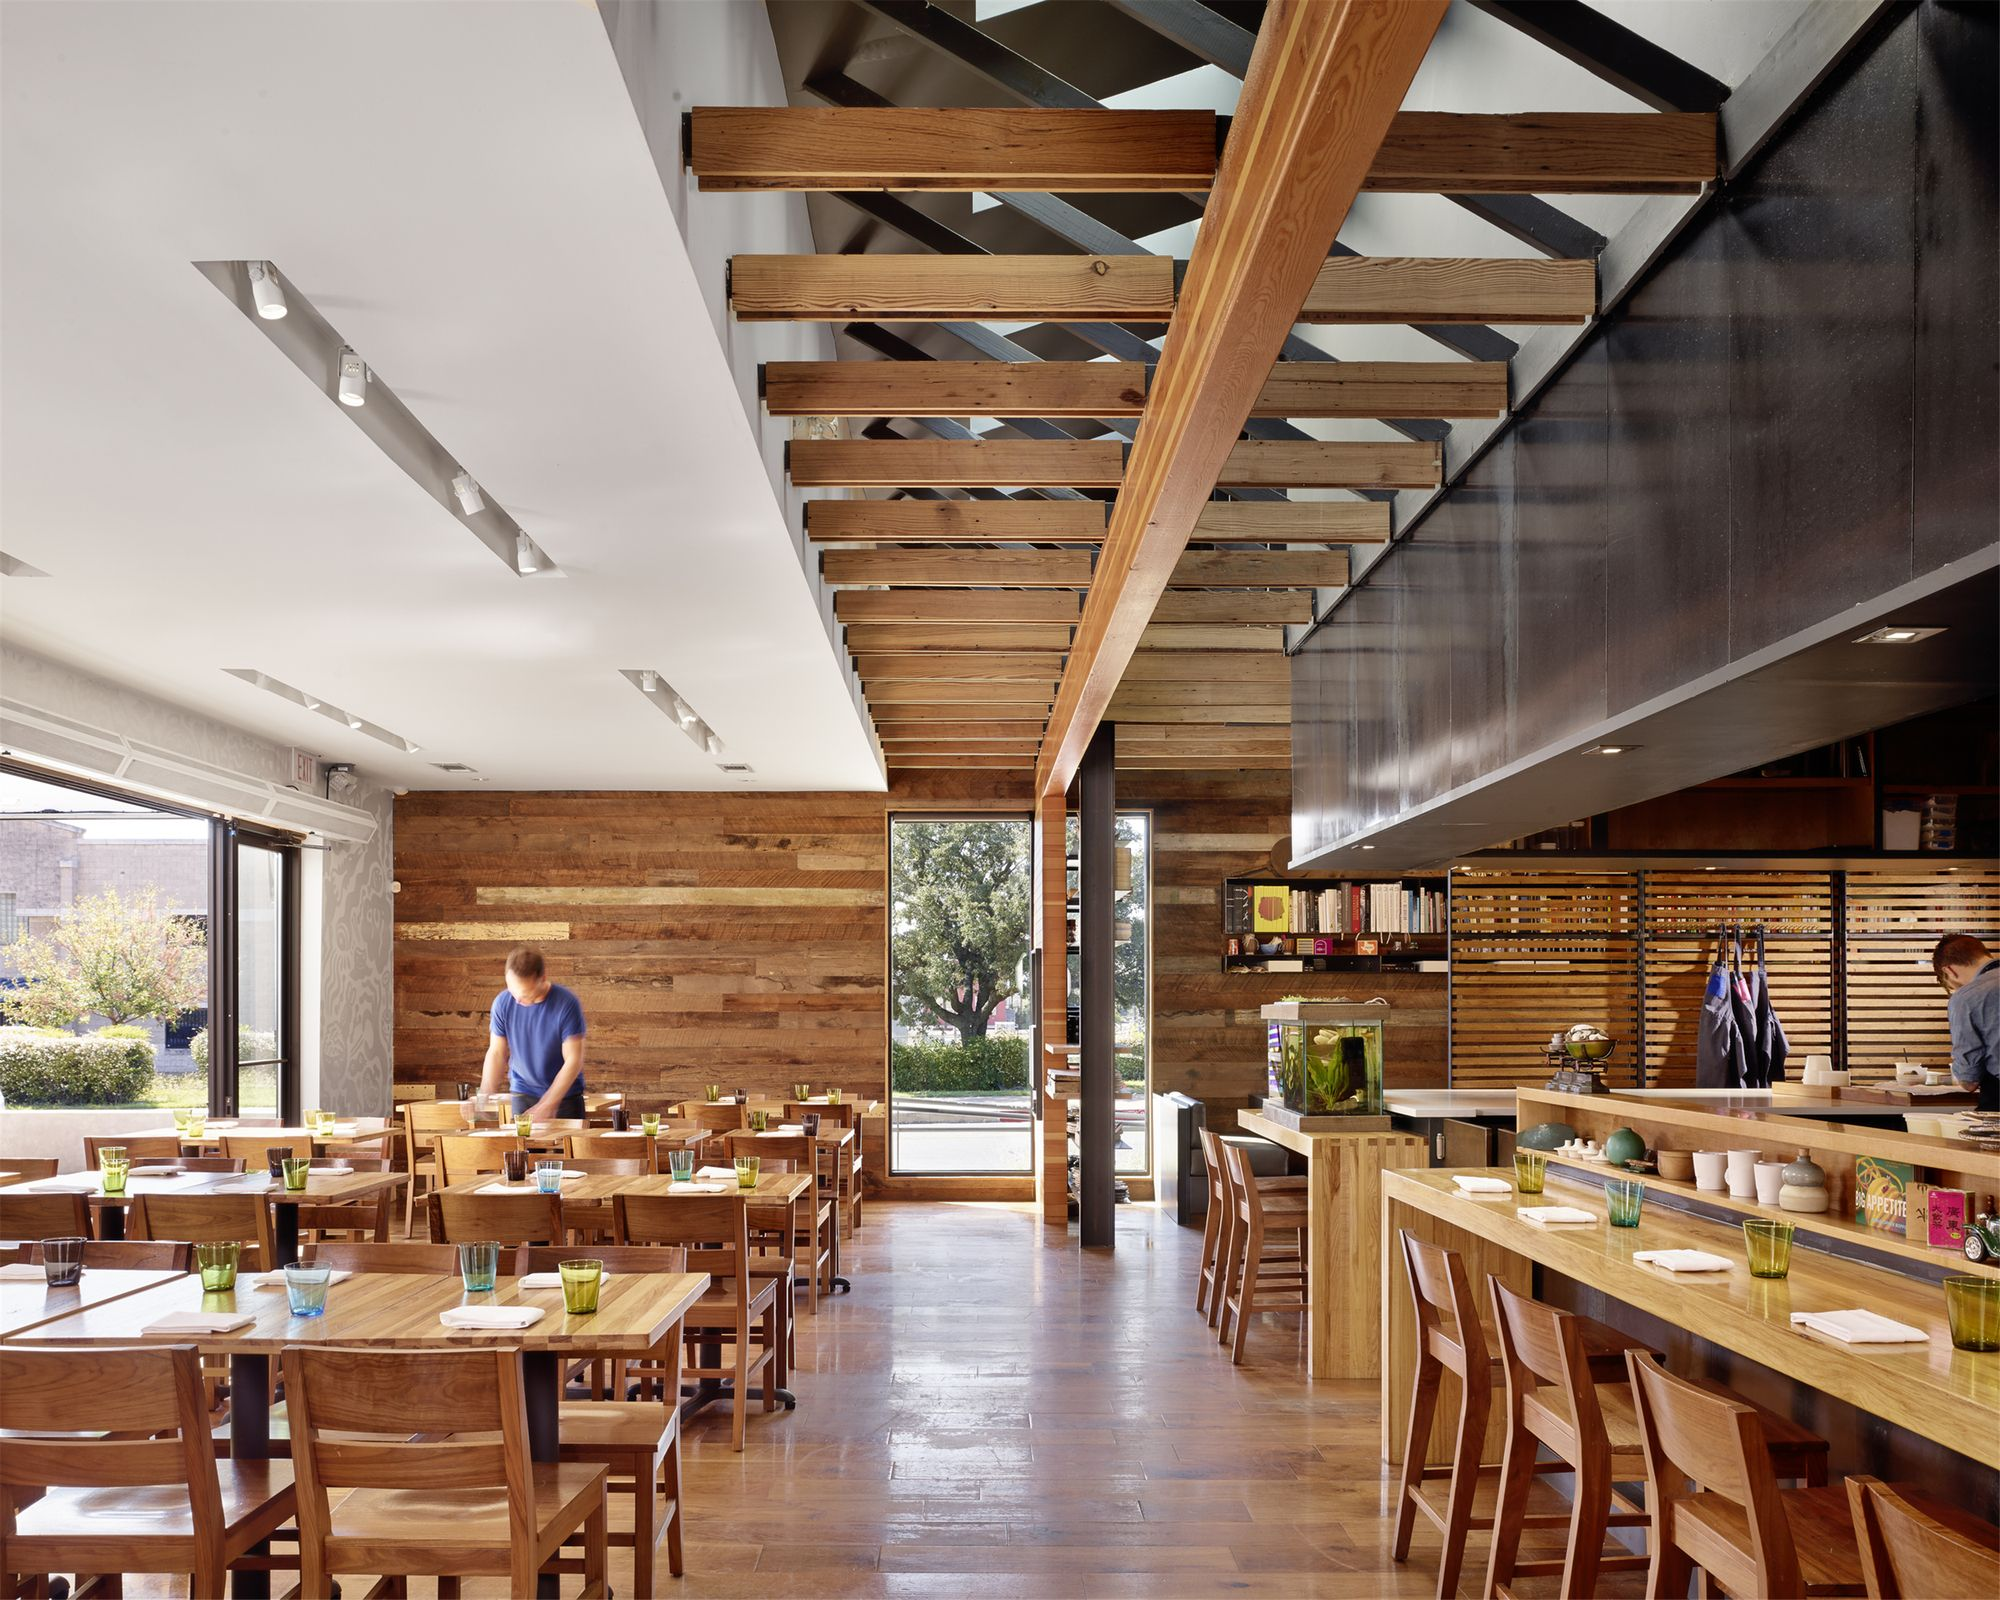 Qui Restaurant / A Parallel Architecture